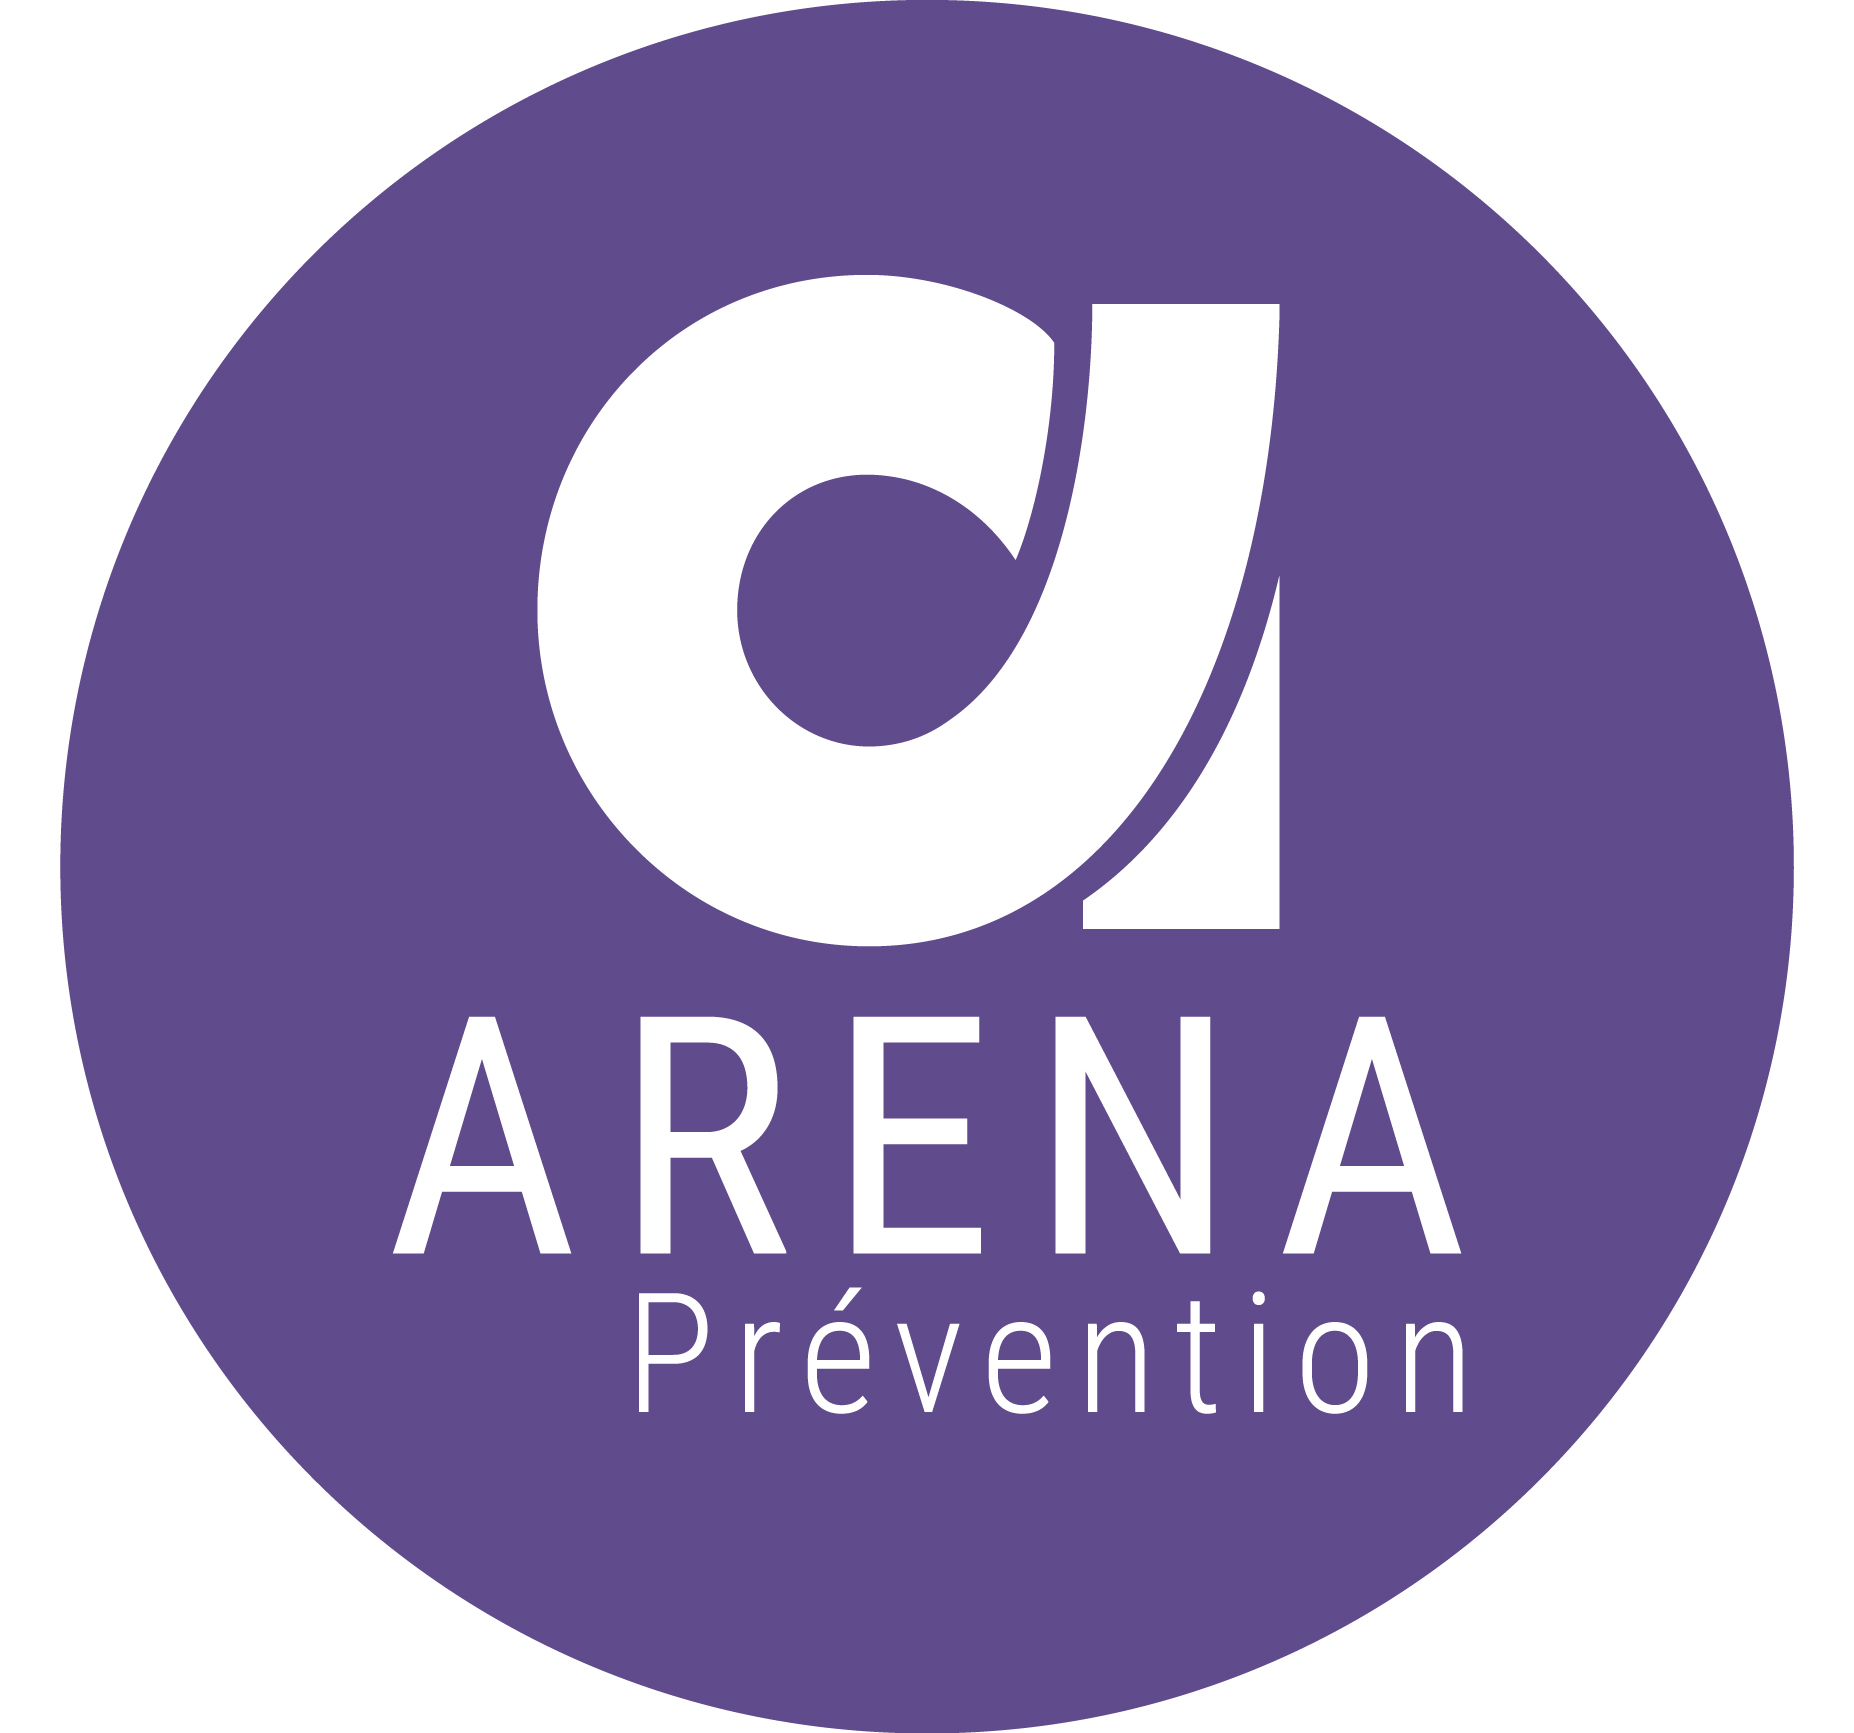 ARENA PREVENTION